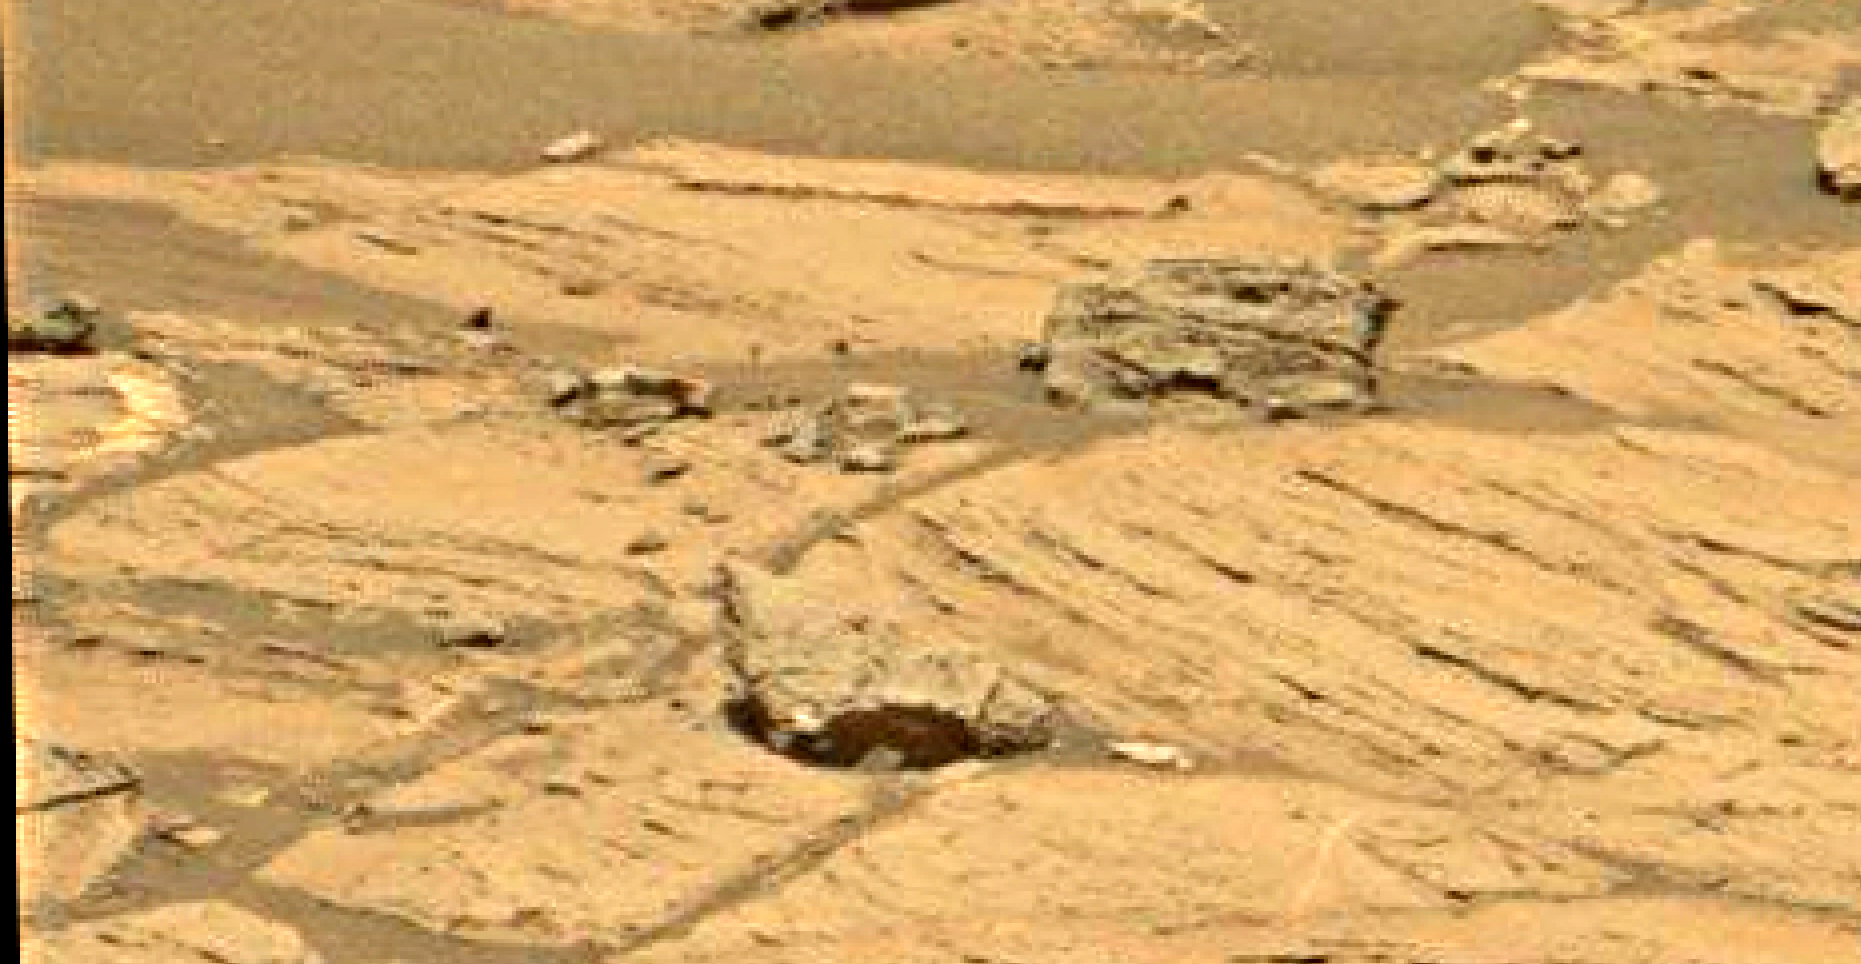 mars sol 1353 anomaly-artifacts 3 was life on mars